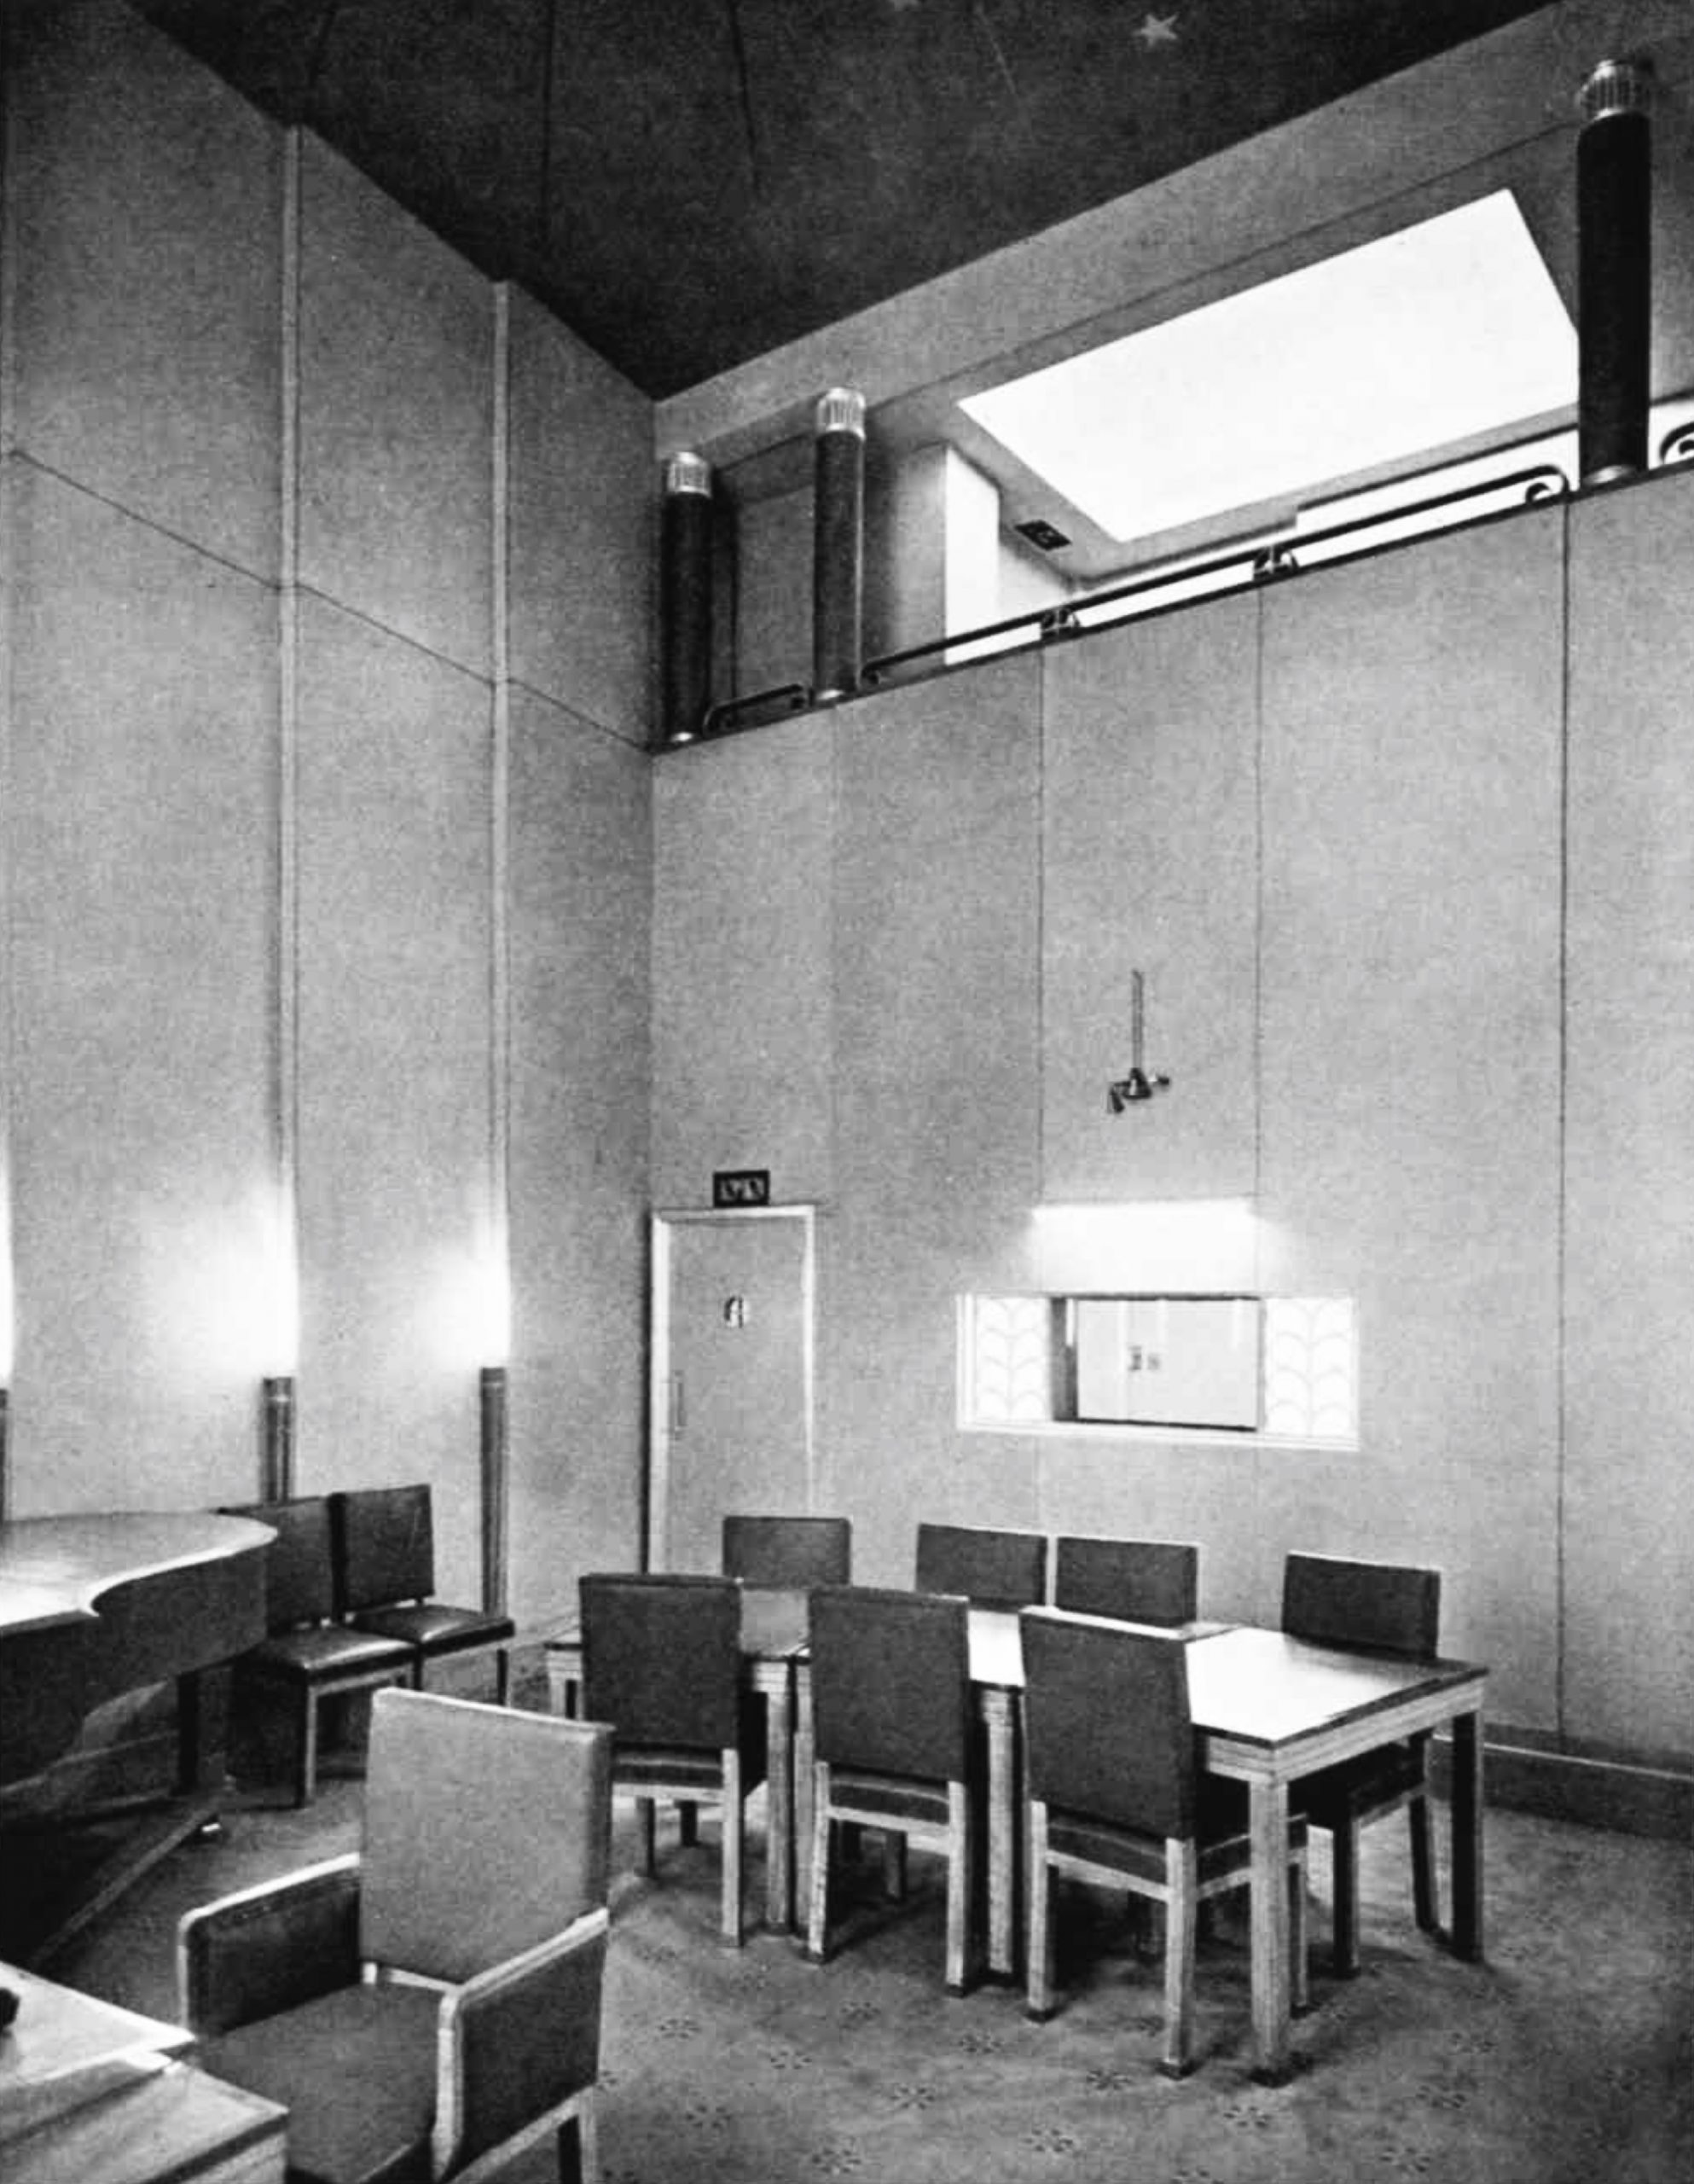 A tall room with a piano, desk and many chairs